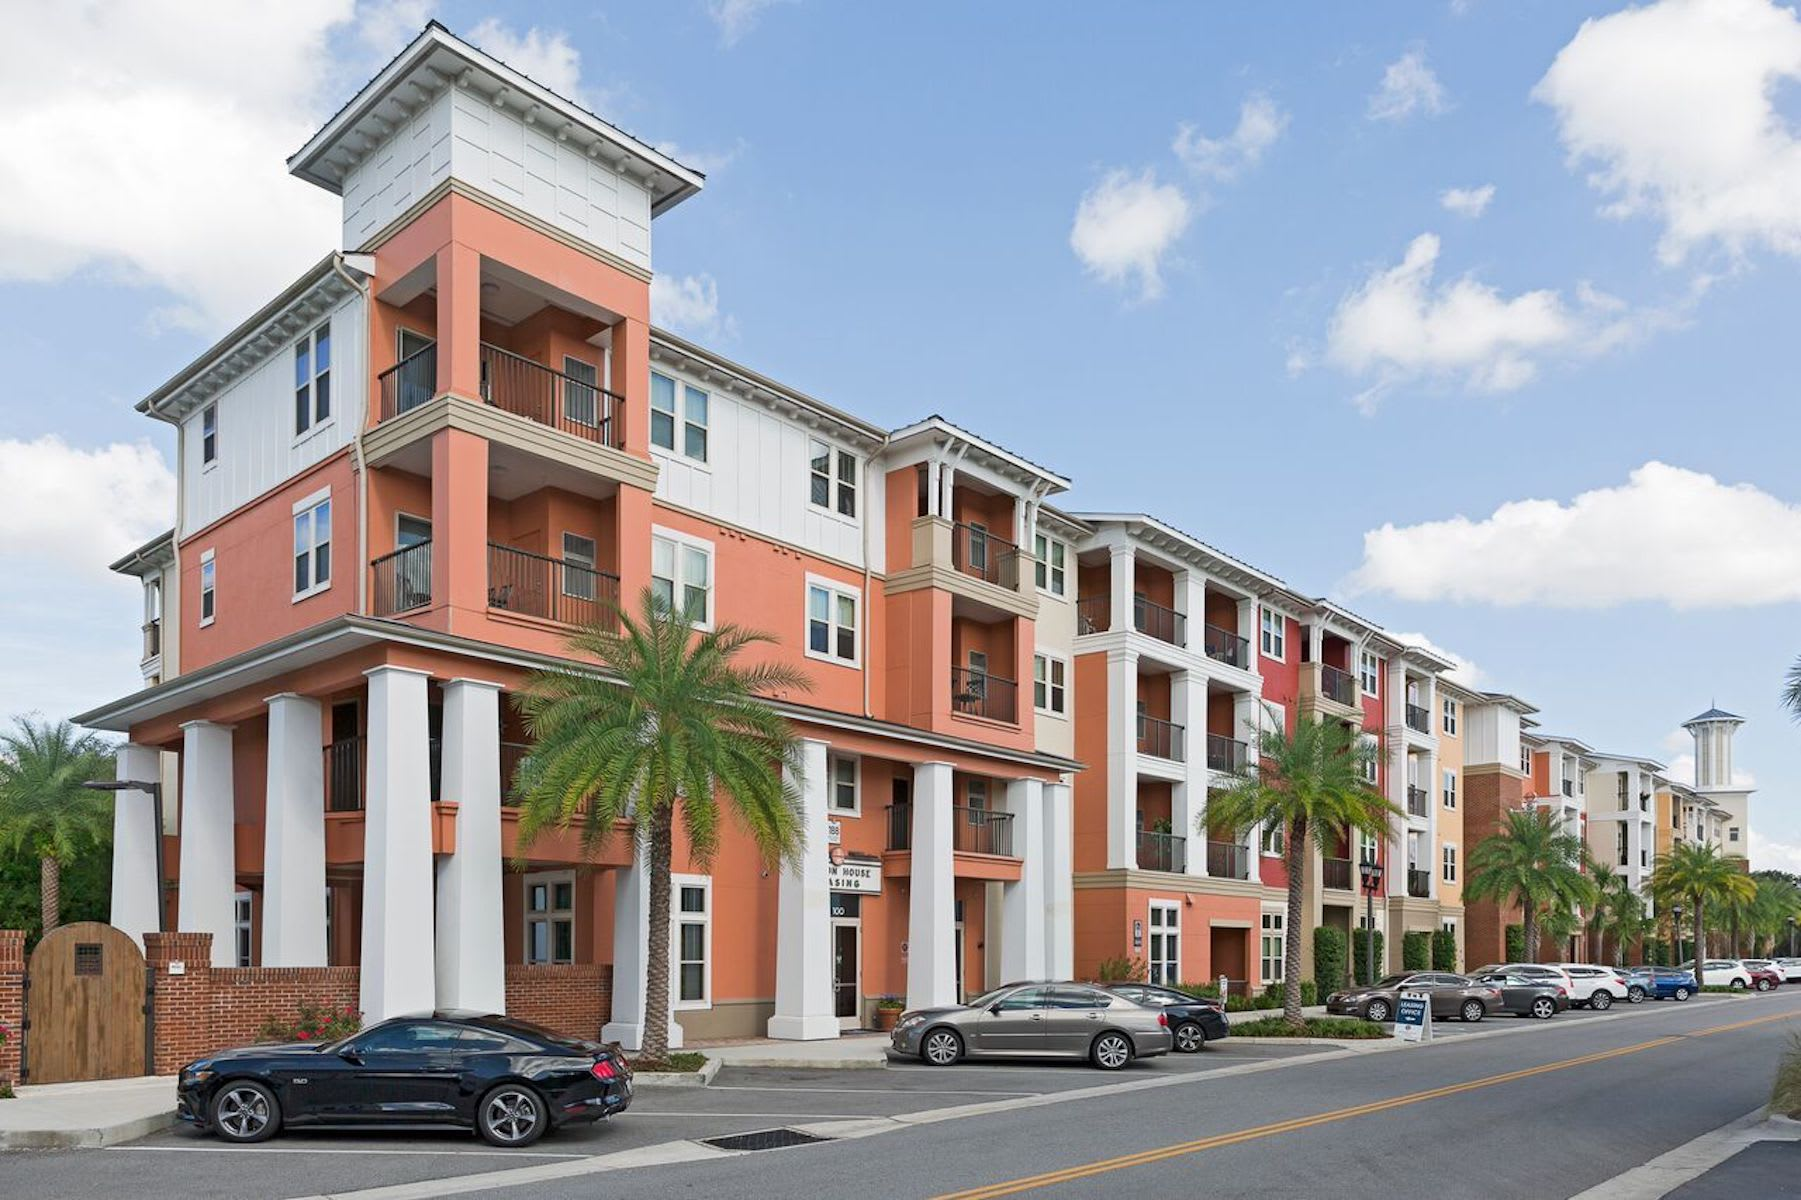 Robbins Property Associates, Easing Residents' Stress with Updater